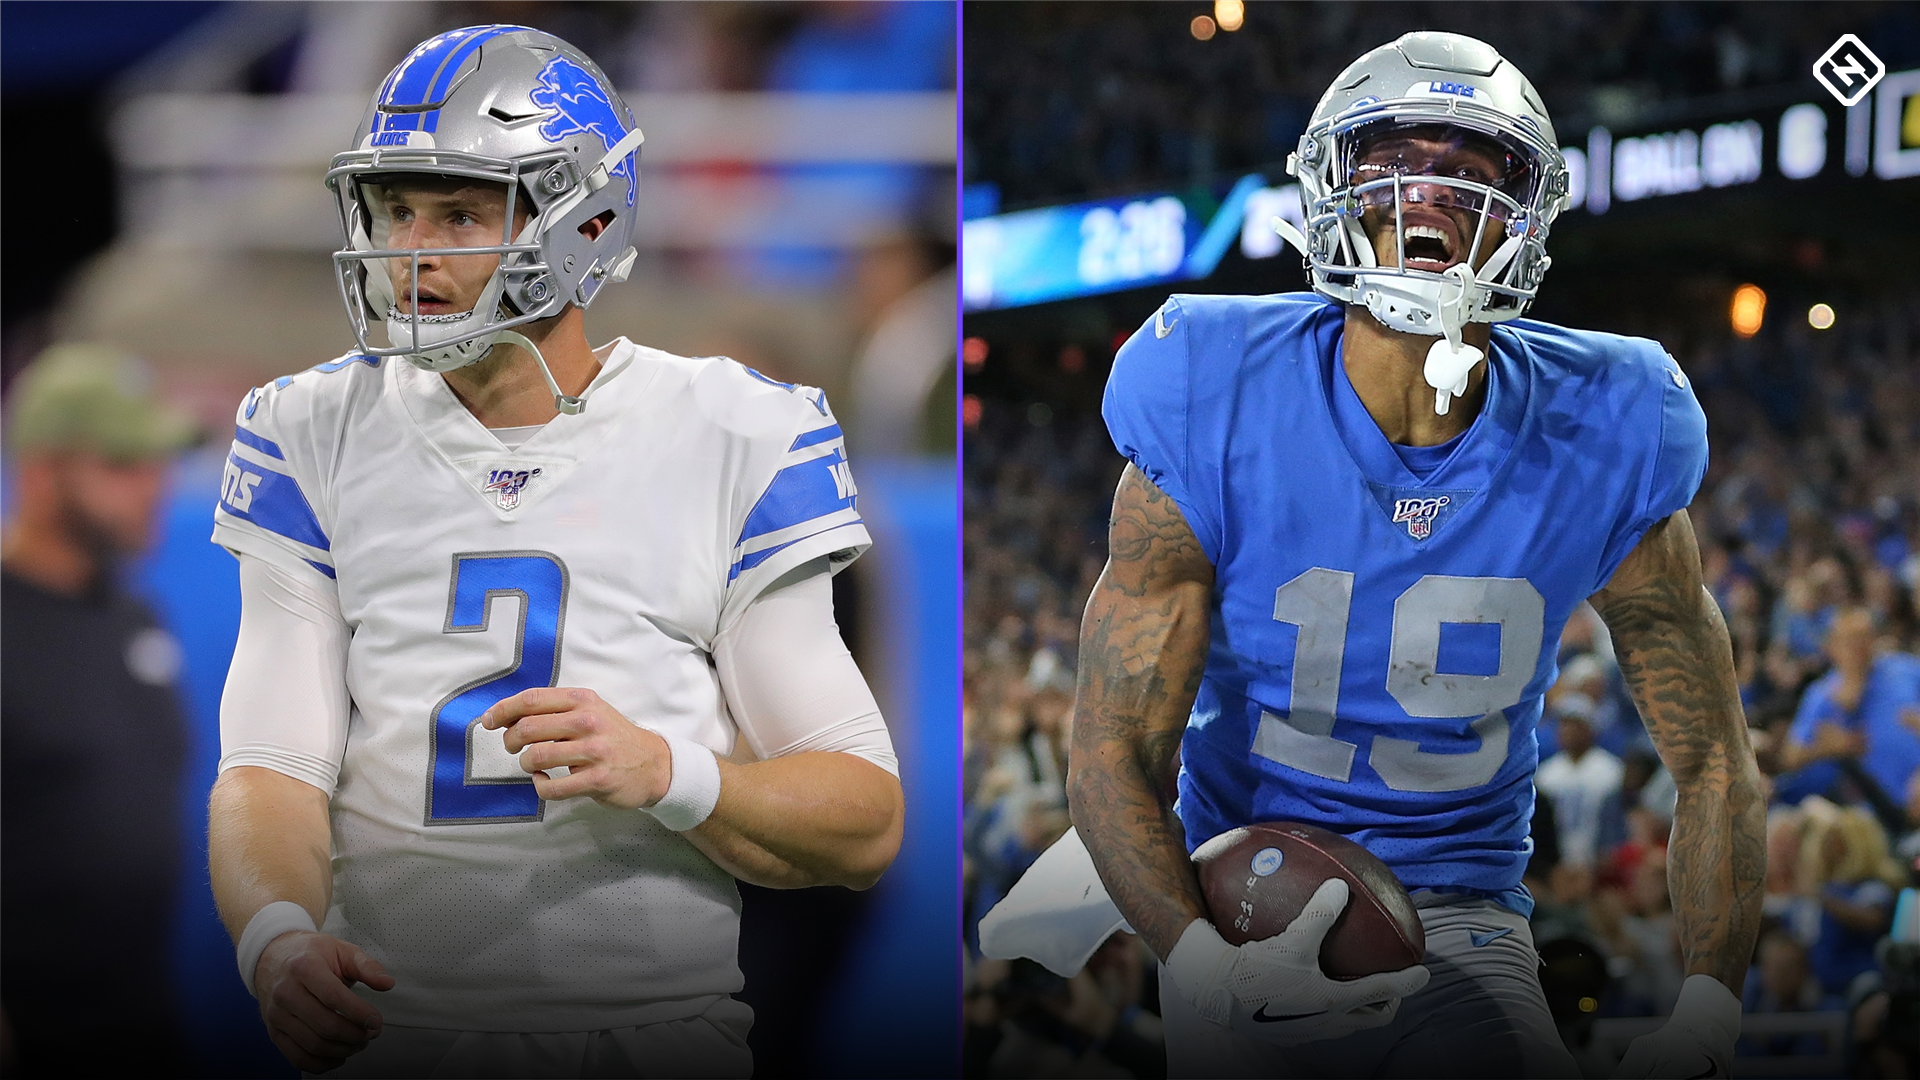 Week 12 DraftKings Picks: Best lineup stacks for NFL DFS tournaments, cash games